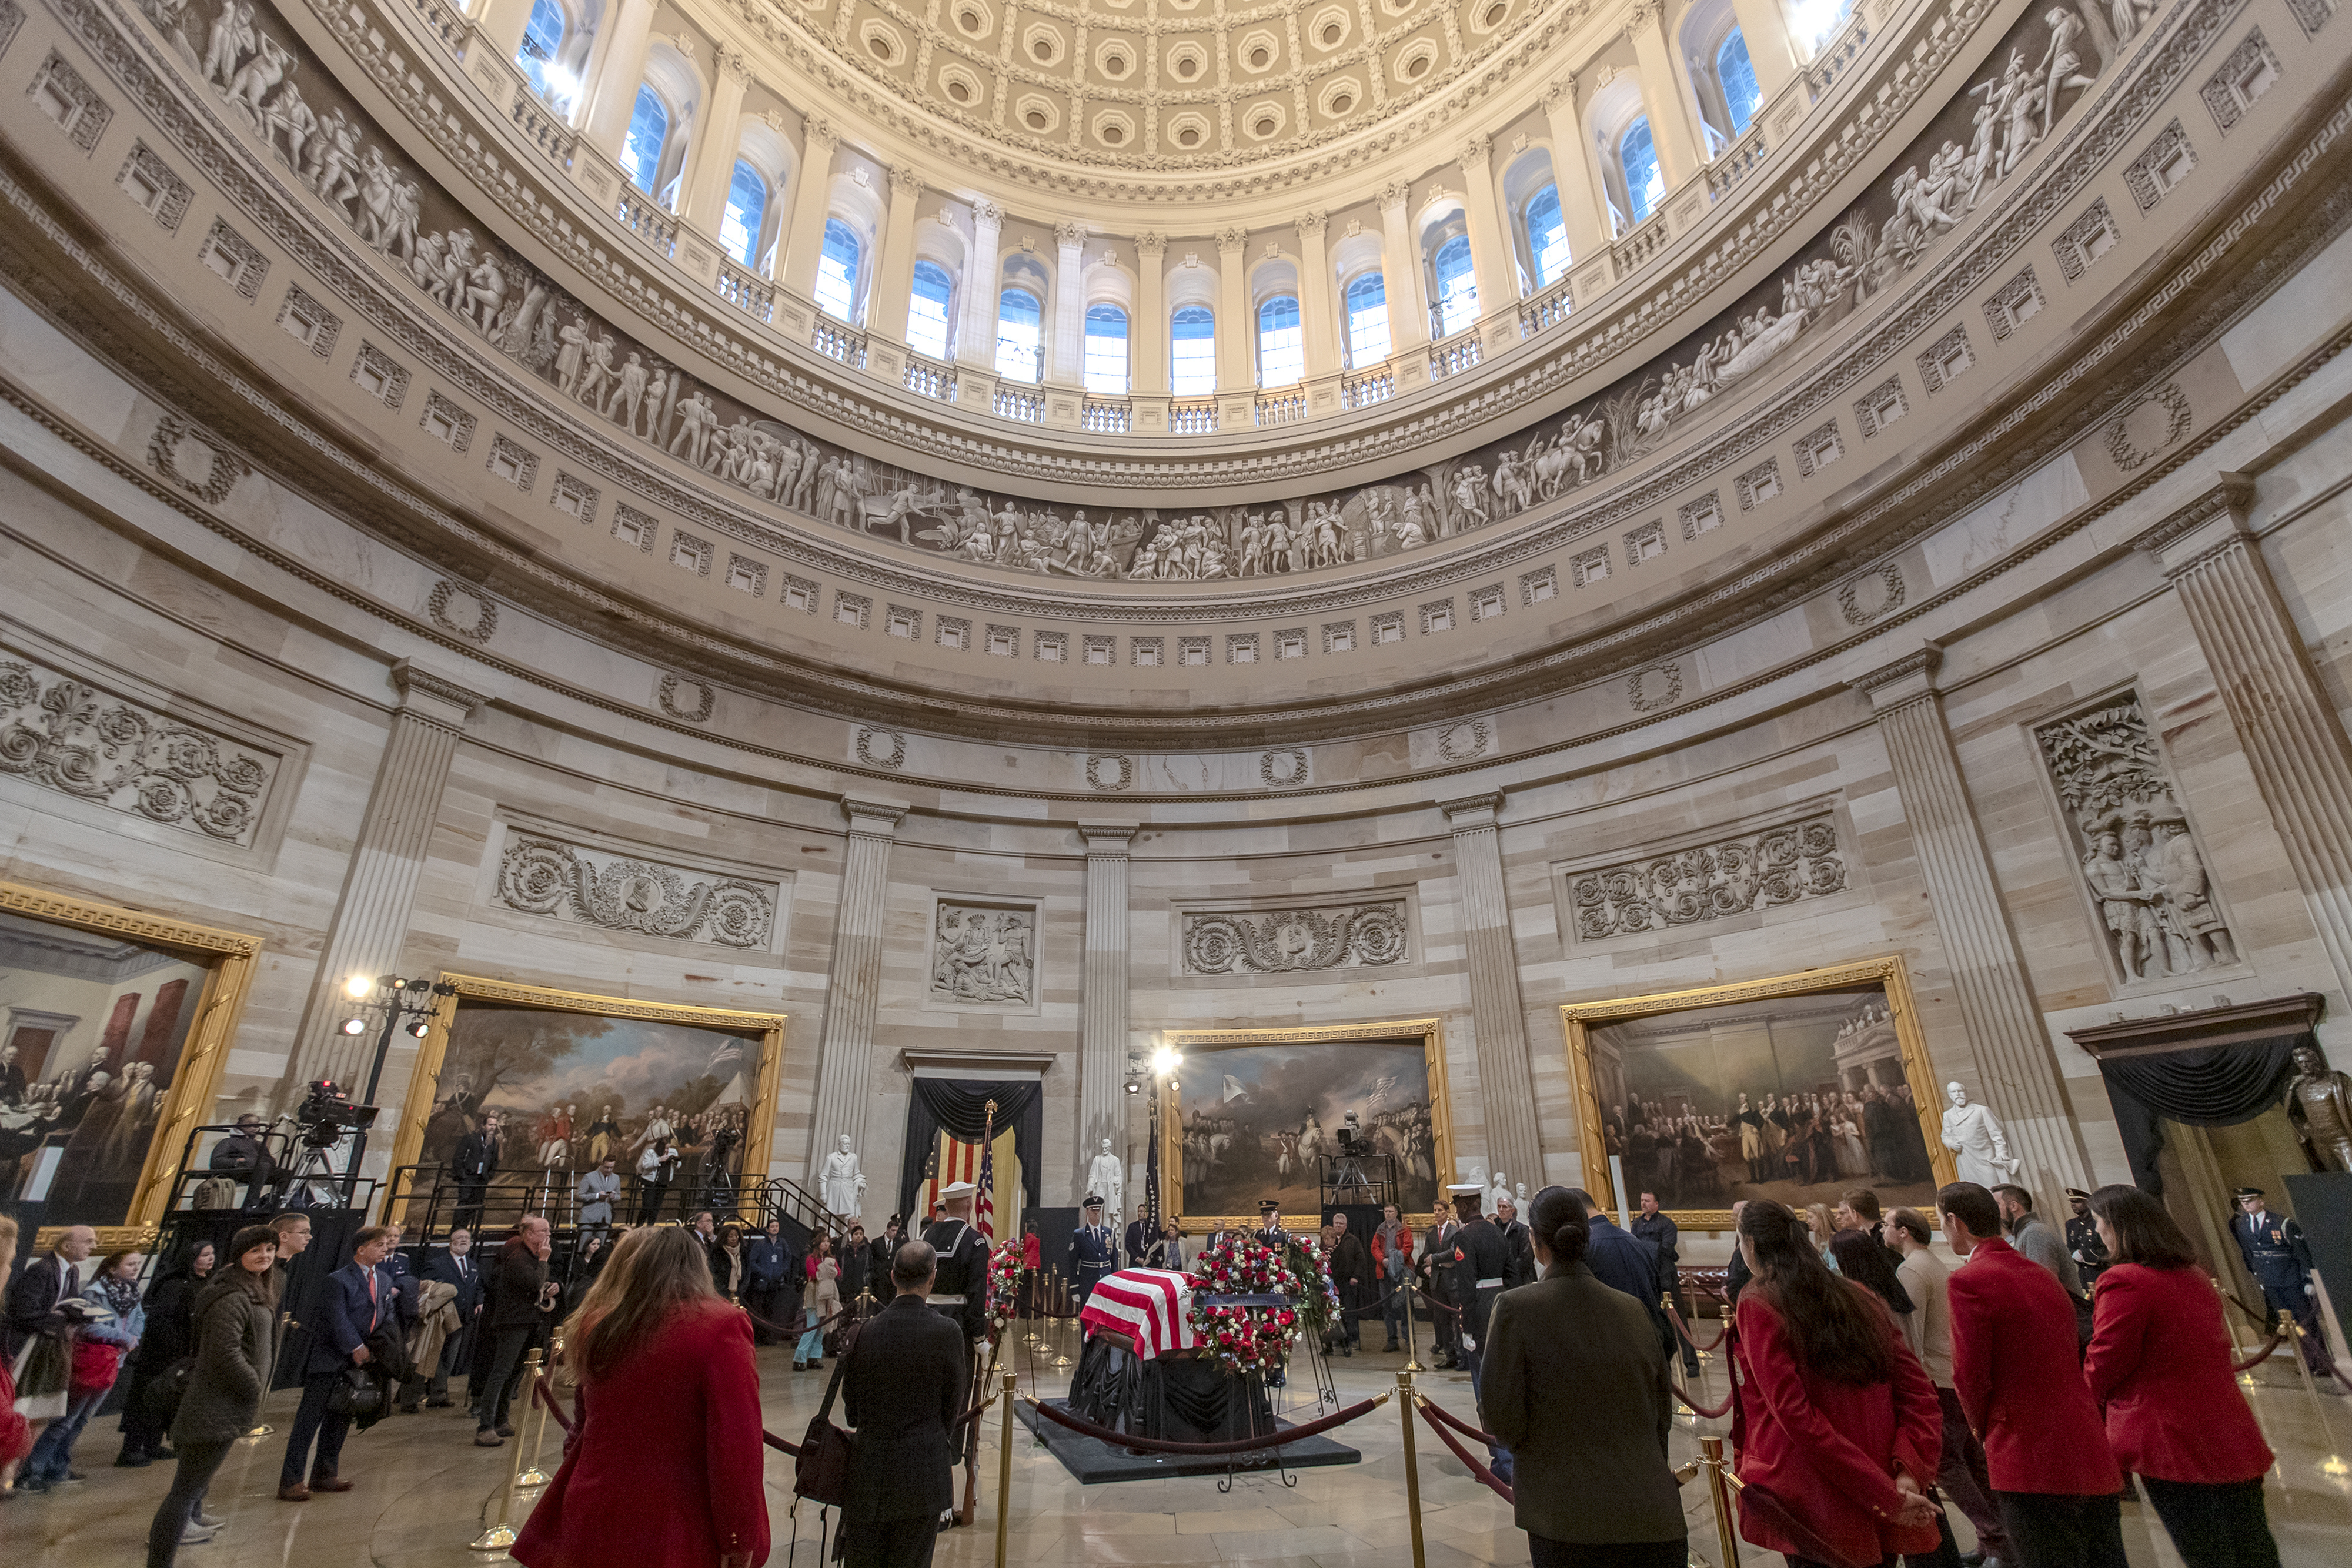 The last visitors pay respects to the late president, George H.W. Bush, as the public viewing comes to an end at the U.S. Capitol Rotunda, Wednesday, Dec. 5, 2018. (AP Photo/J. Scott Applewhite)